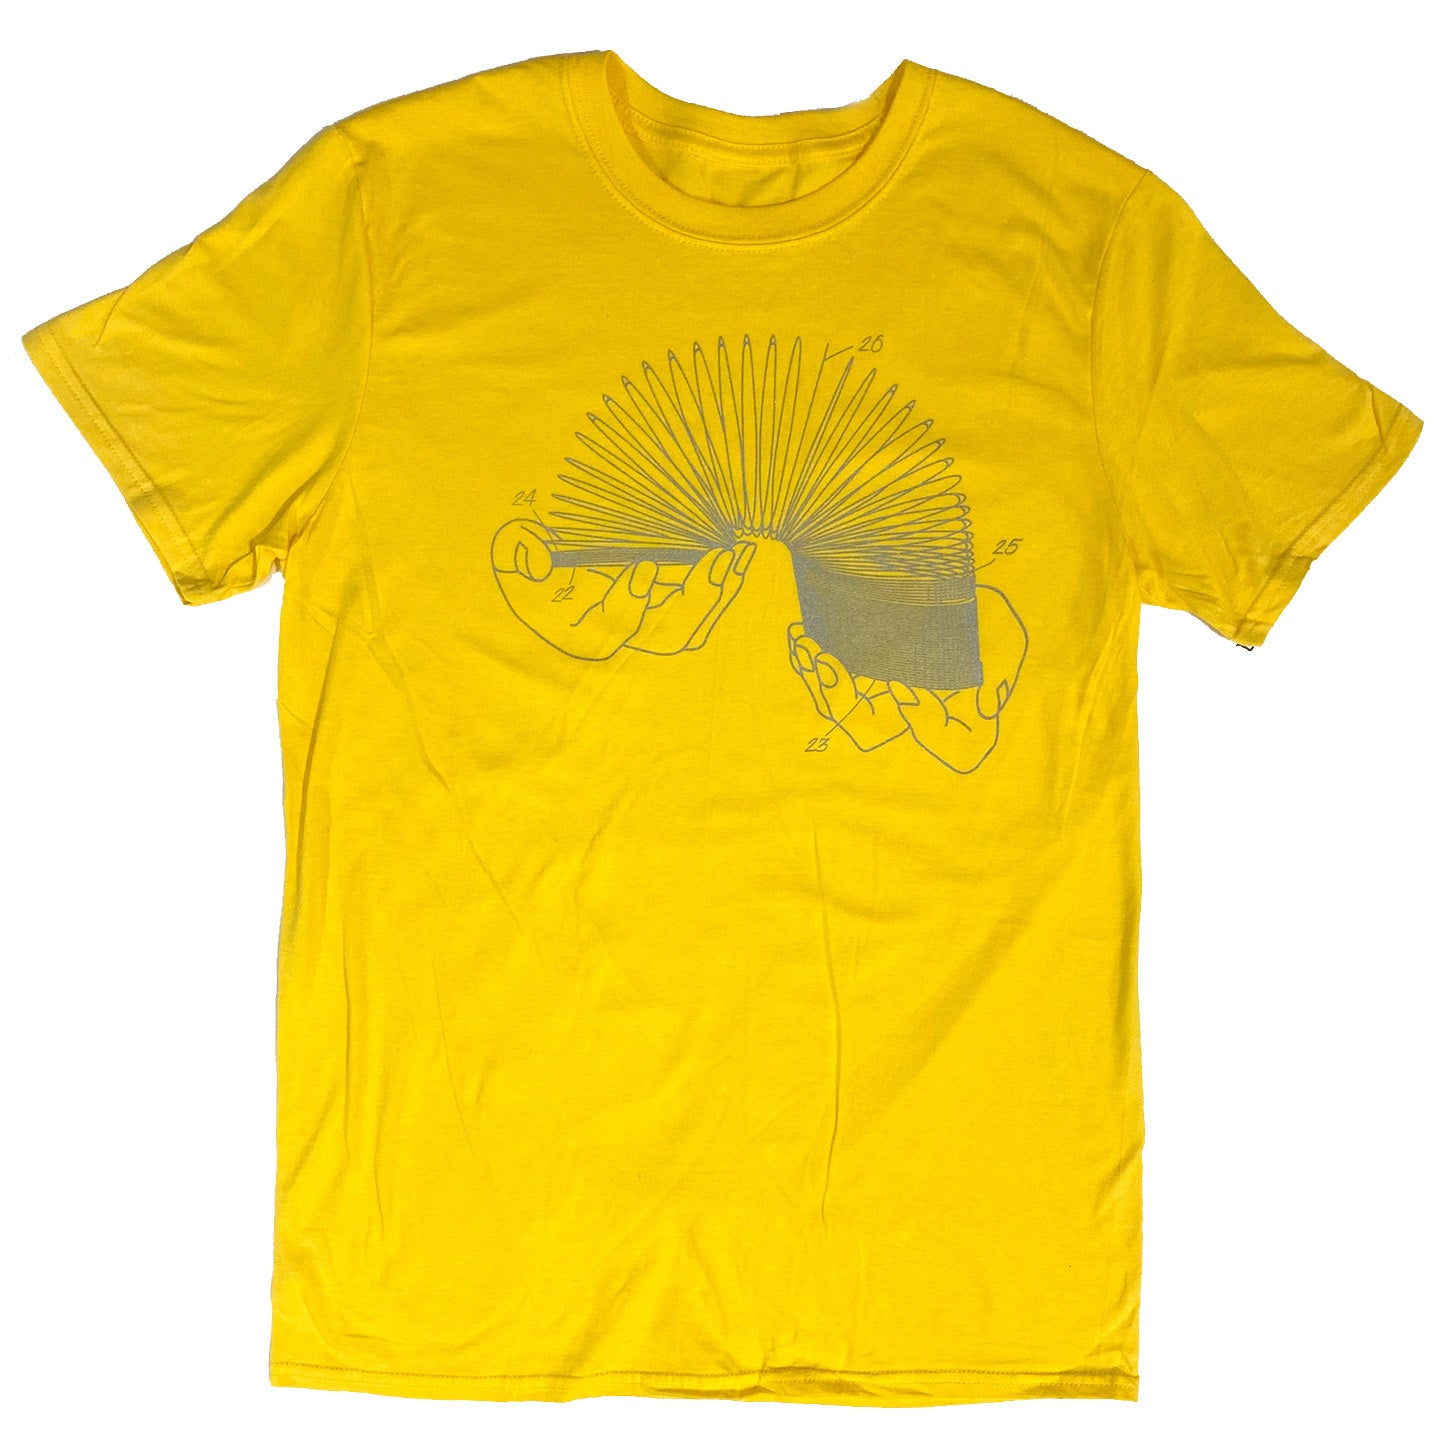 Slinky Patent T-Shirt - Yellow with Metallic Silver Ink